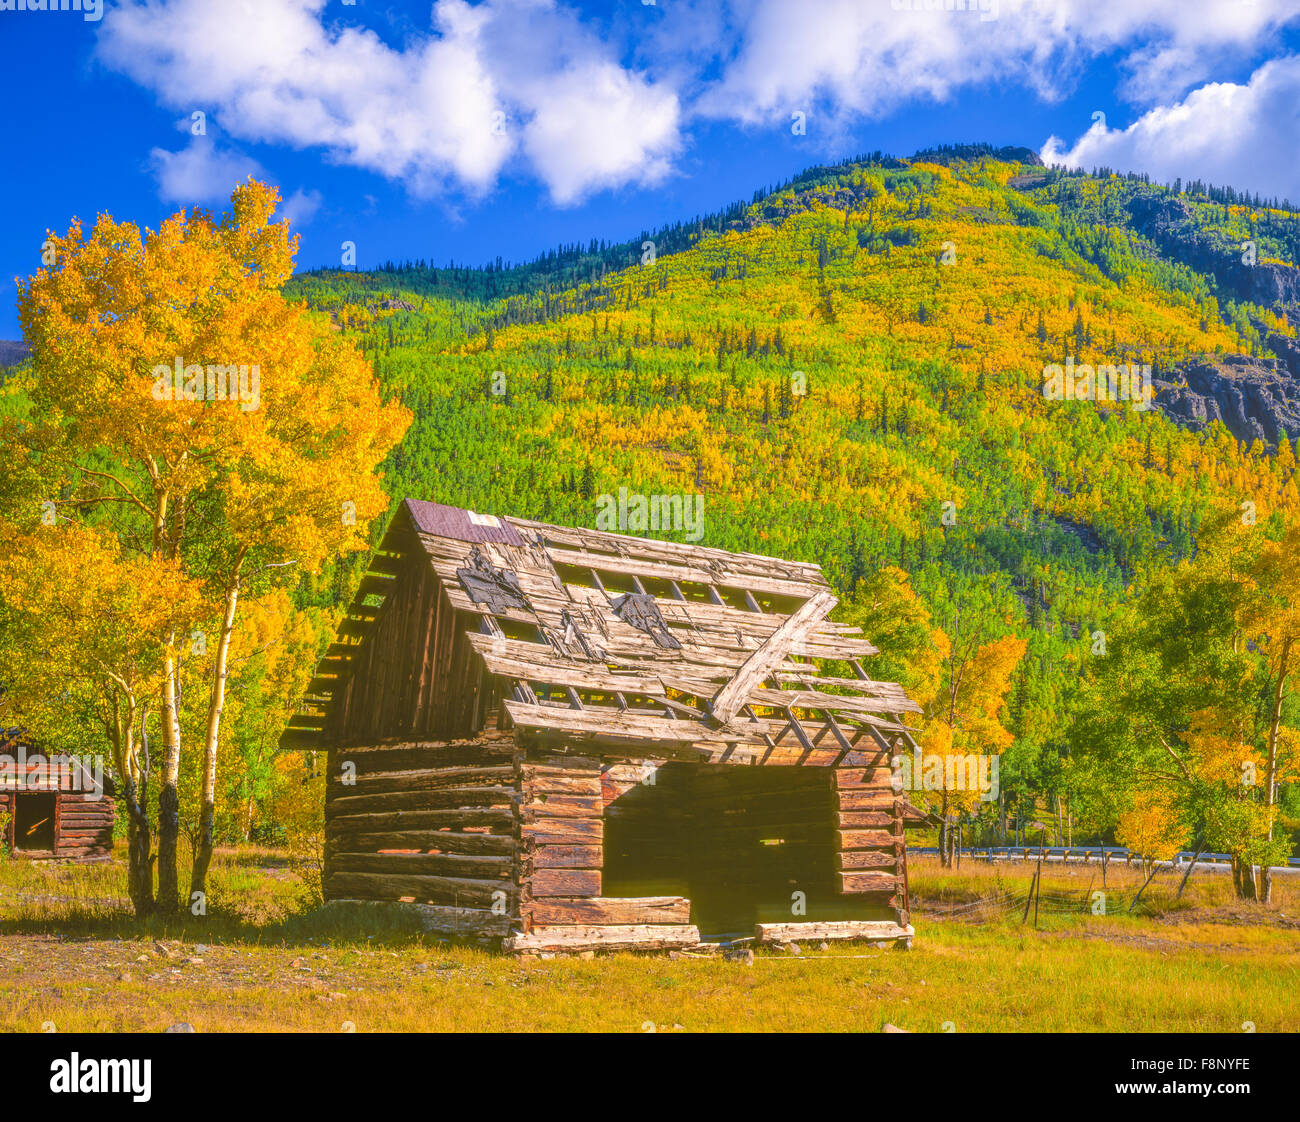 Cabin at Capitol City, Uncompahgre National Forest, Colorado, Ghost town established in 1877, Henson Creek, Engineer - Stock Image